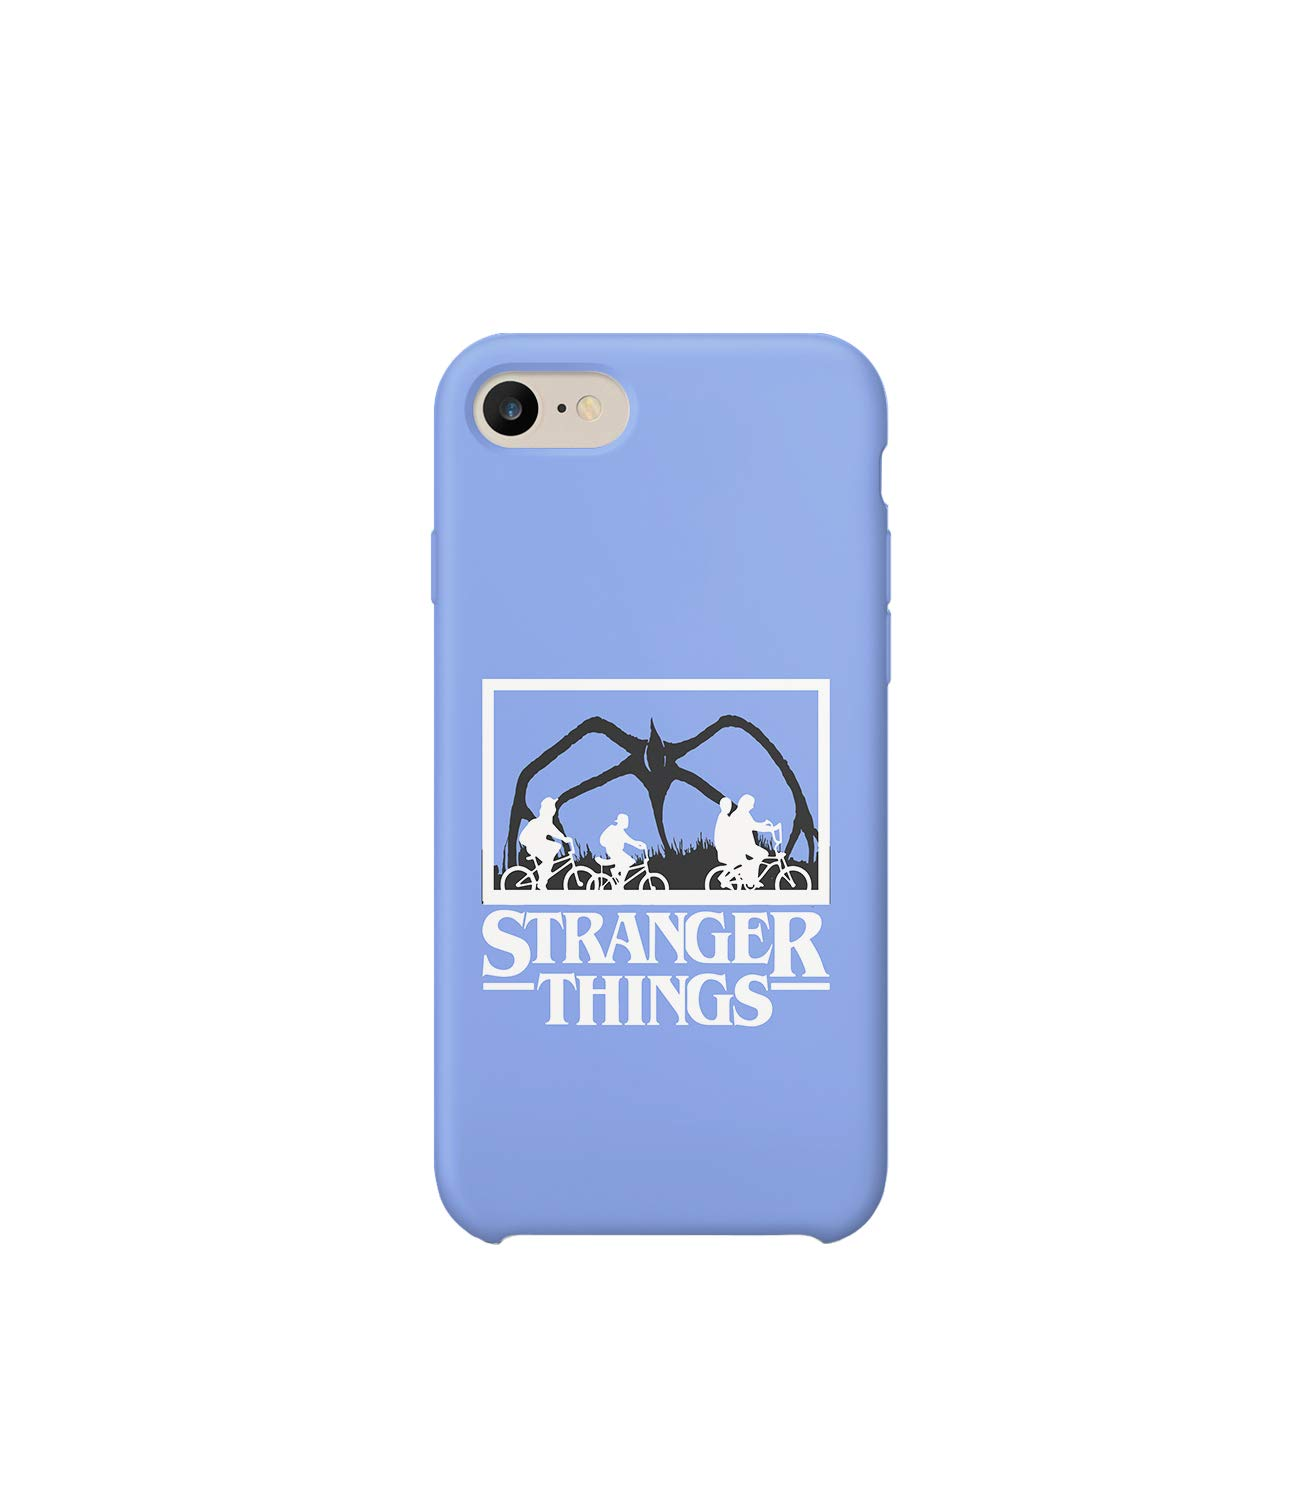 GlamourLab Stranger Things Kids On Bicycles Road_R2689 Carcasa De Telefono Estuche Protector Case Cover Hard Plastic Compatible with For iPhone 6 Plus Novelty Present Birthday: Amazon.es: Electrónica